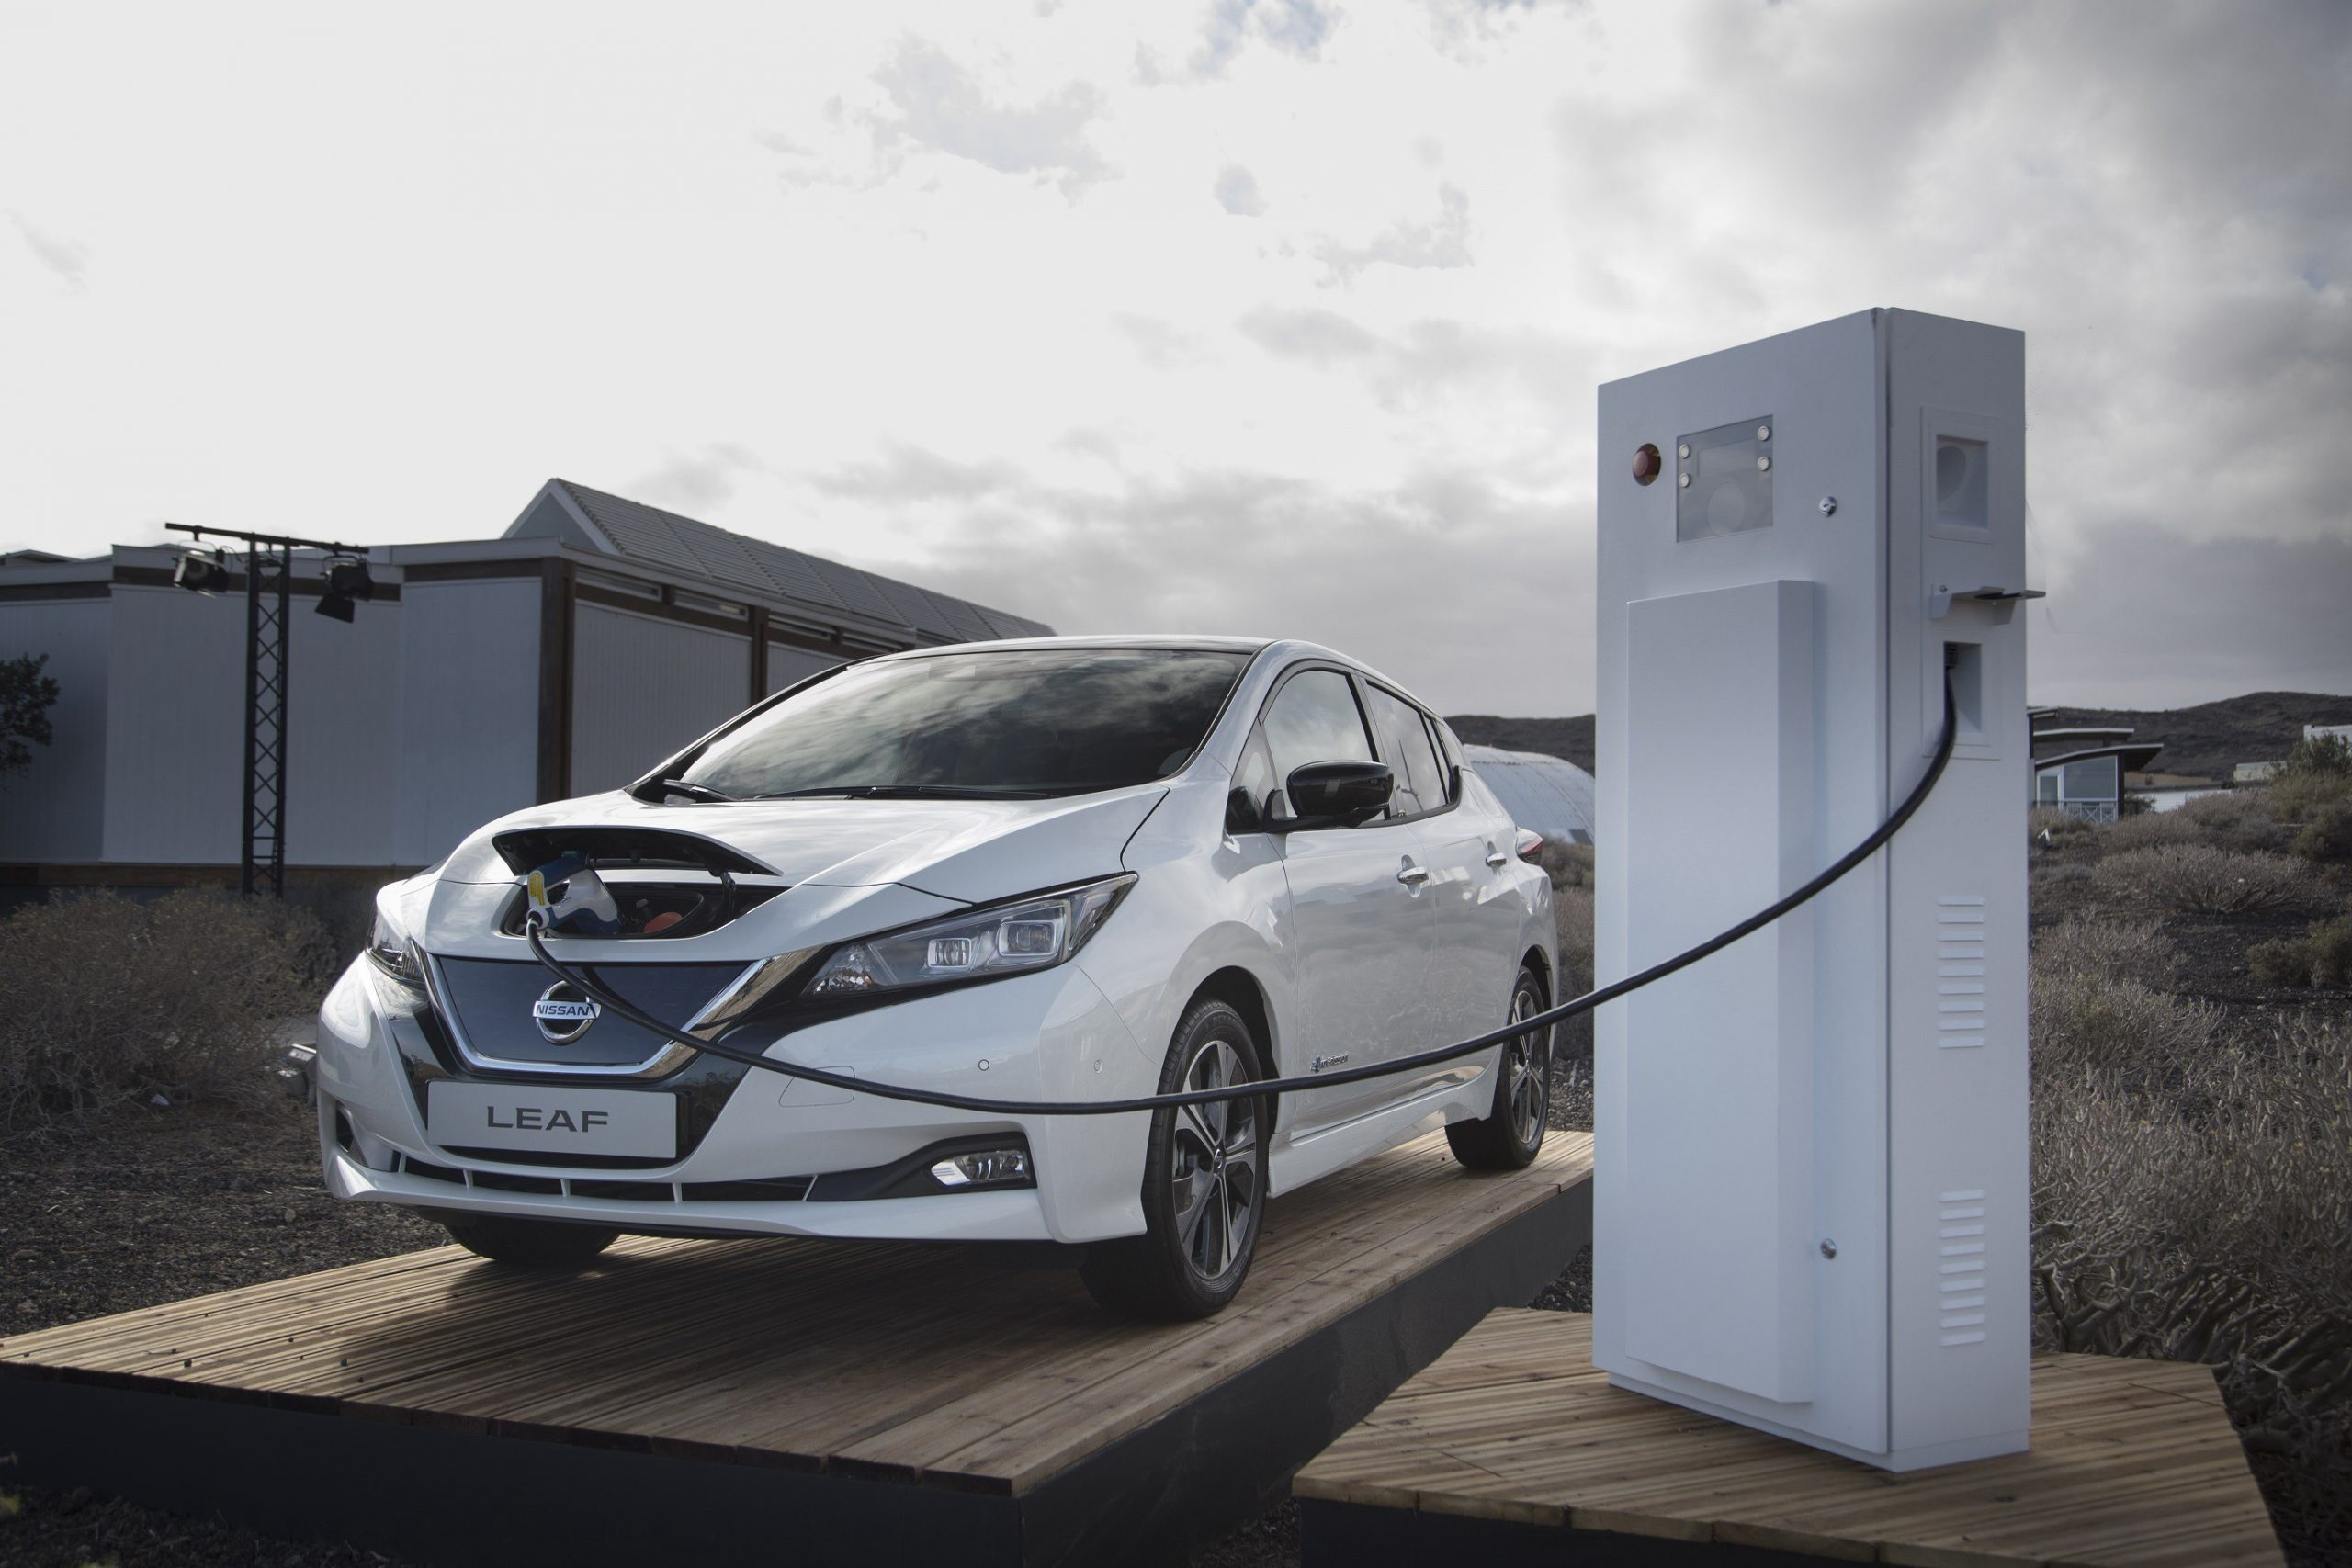 The Mobility House uses EVs to overcome grid bottlenecks